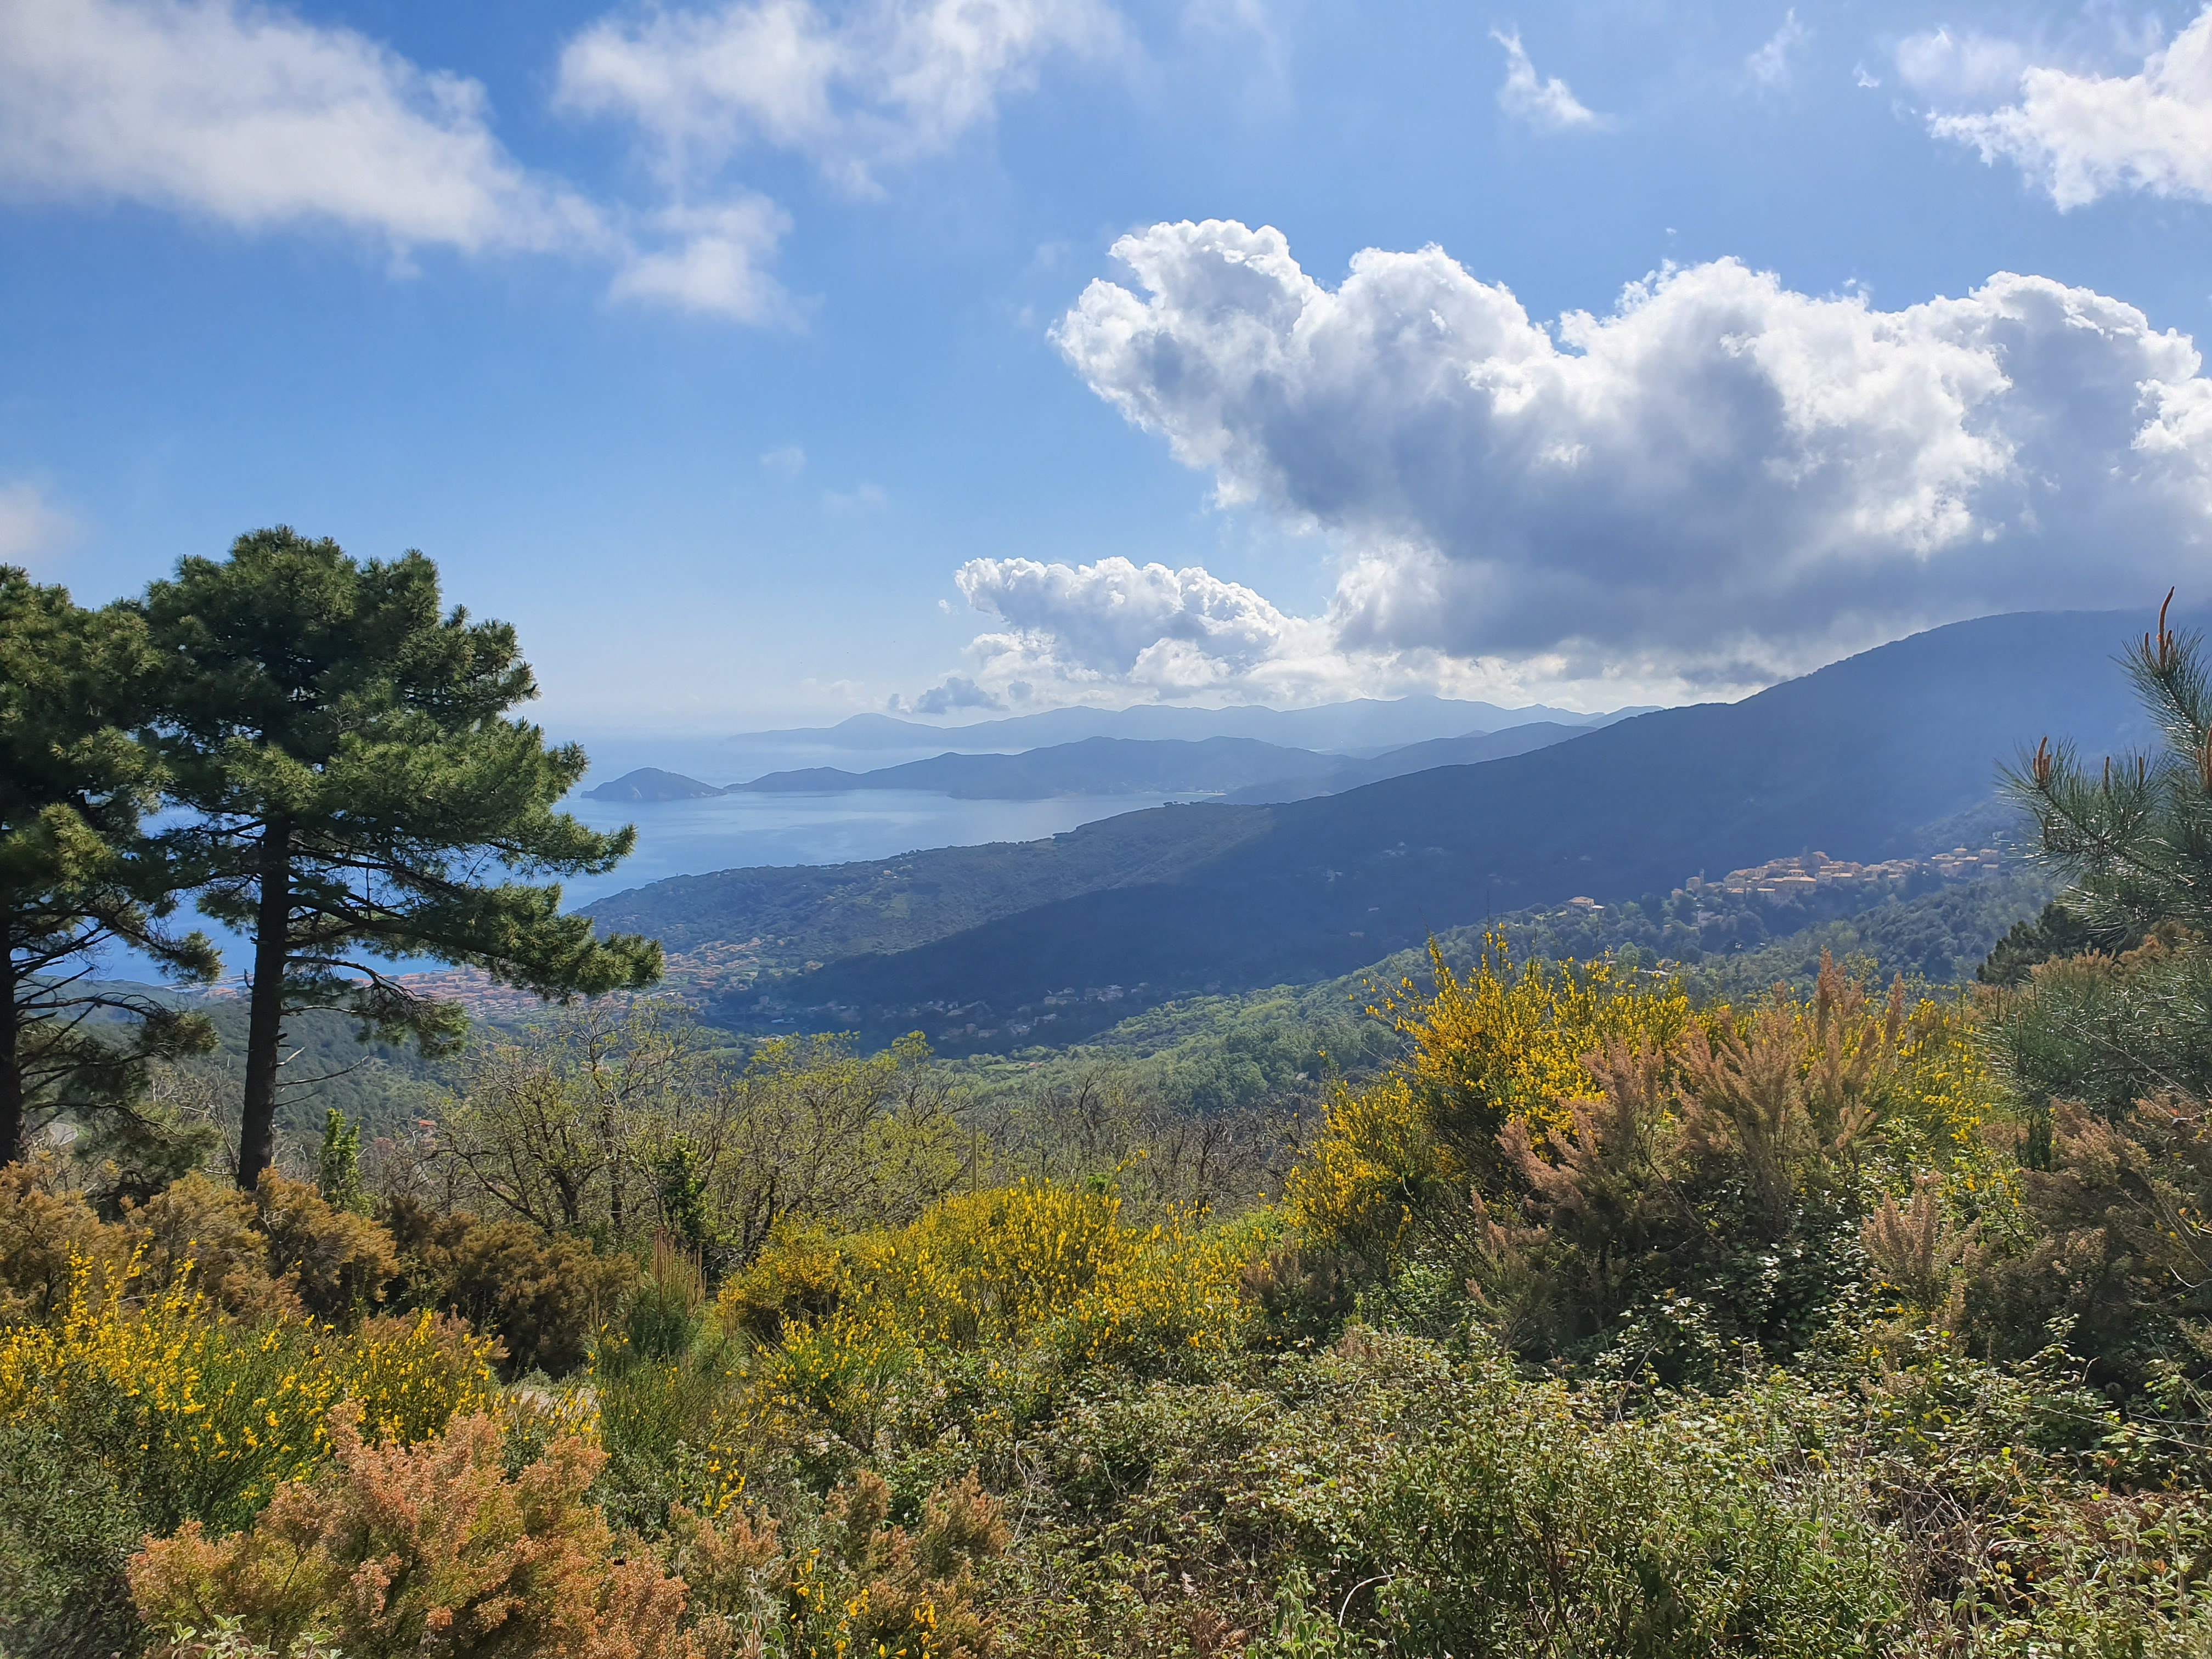 Elba Image by pozziss from Pixabay